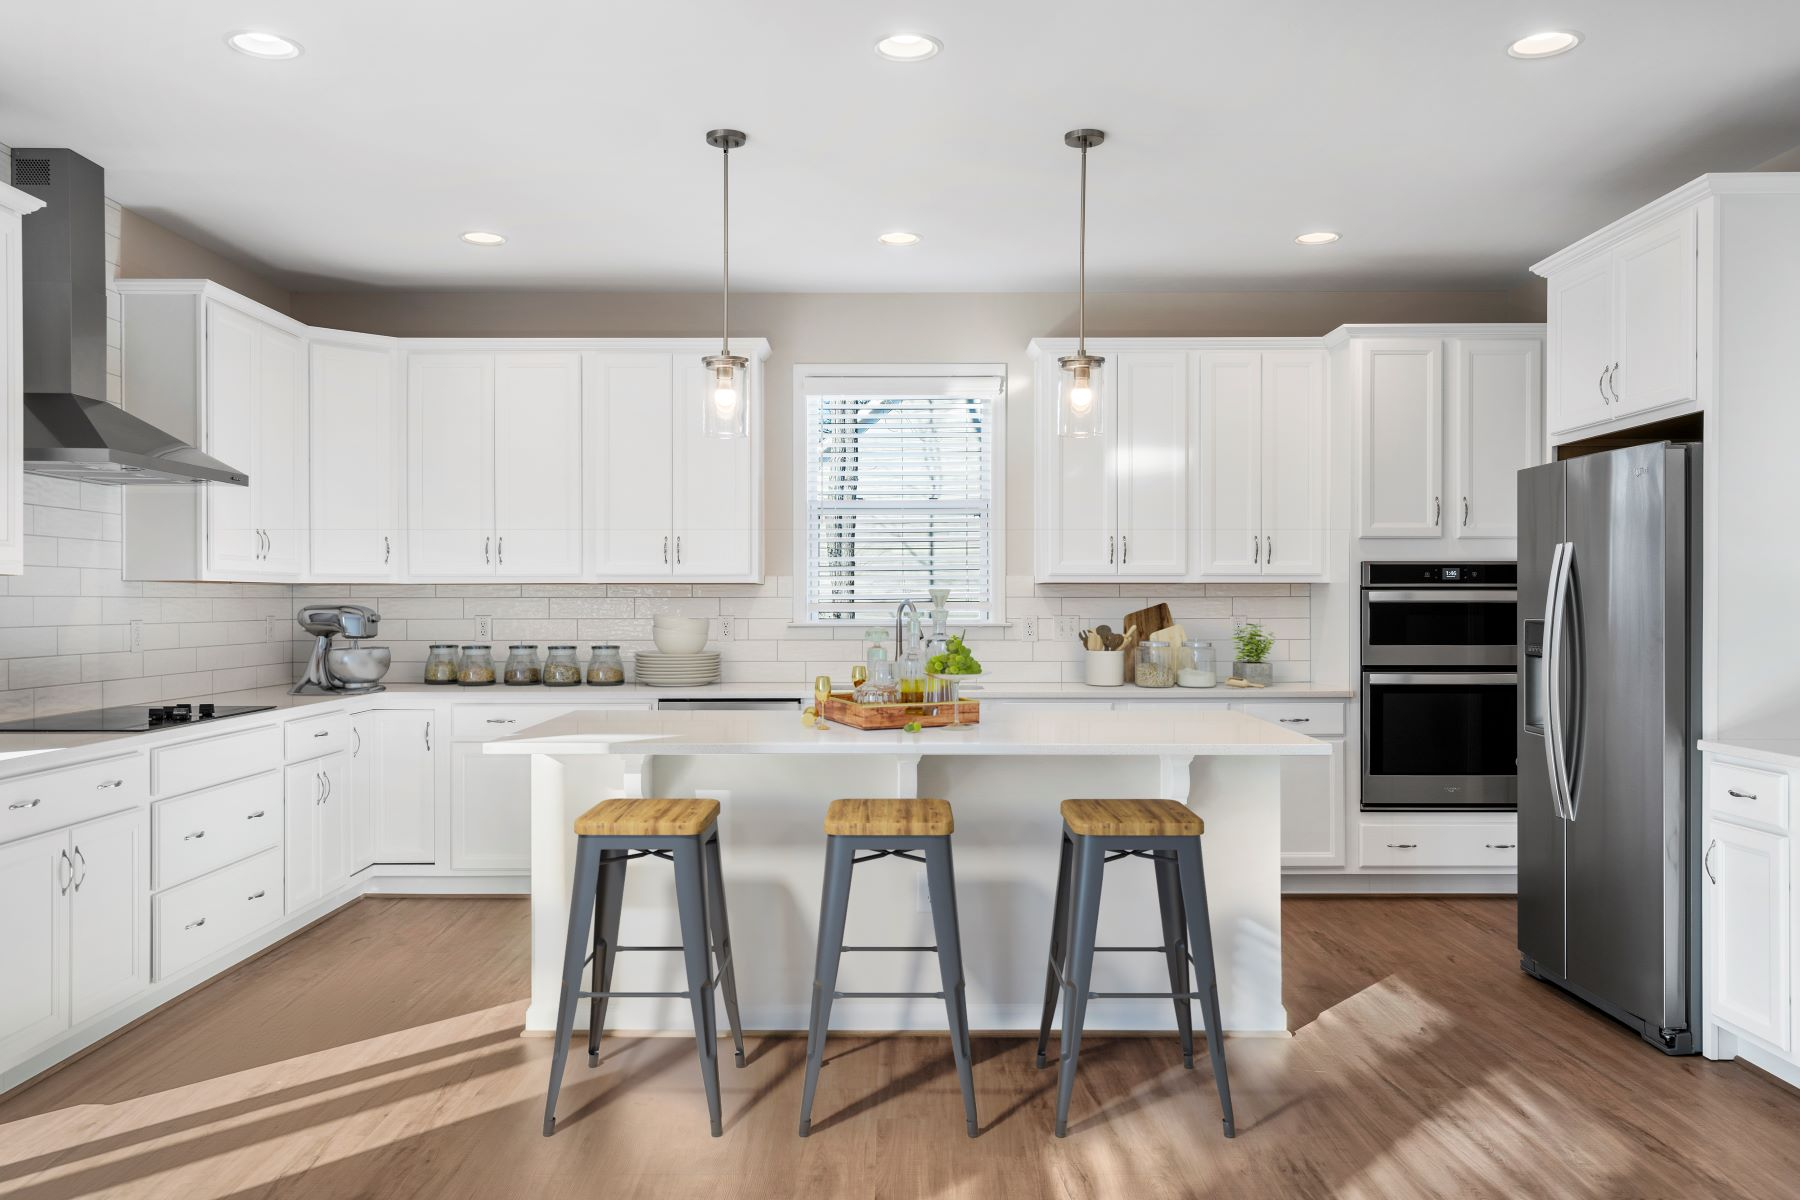 Marshall Plan Kitchen at Ballentine Place in Holly Springs North Carolina by Mattamy Homes